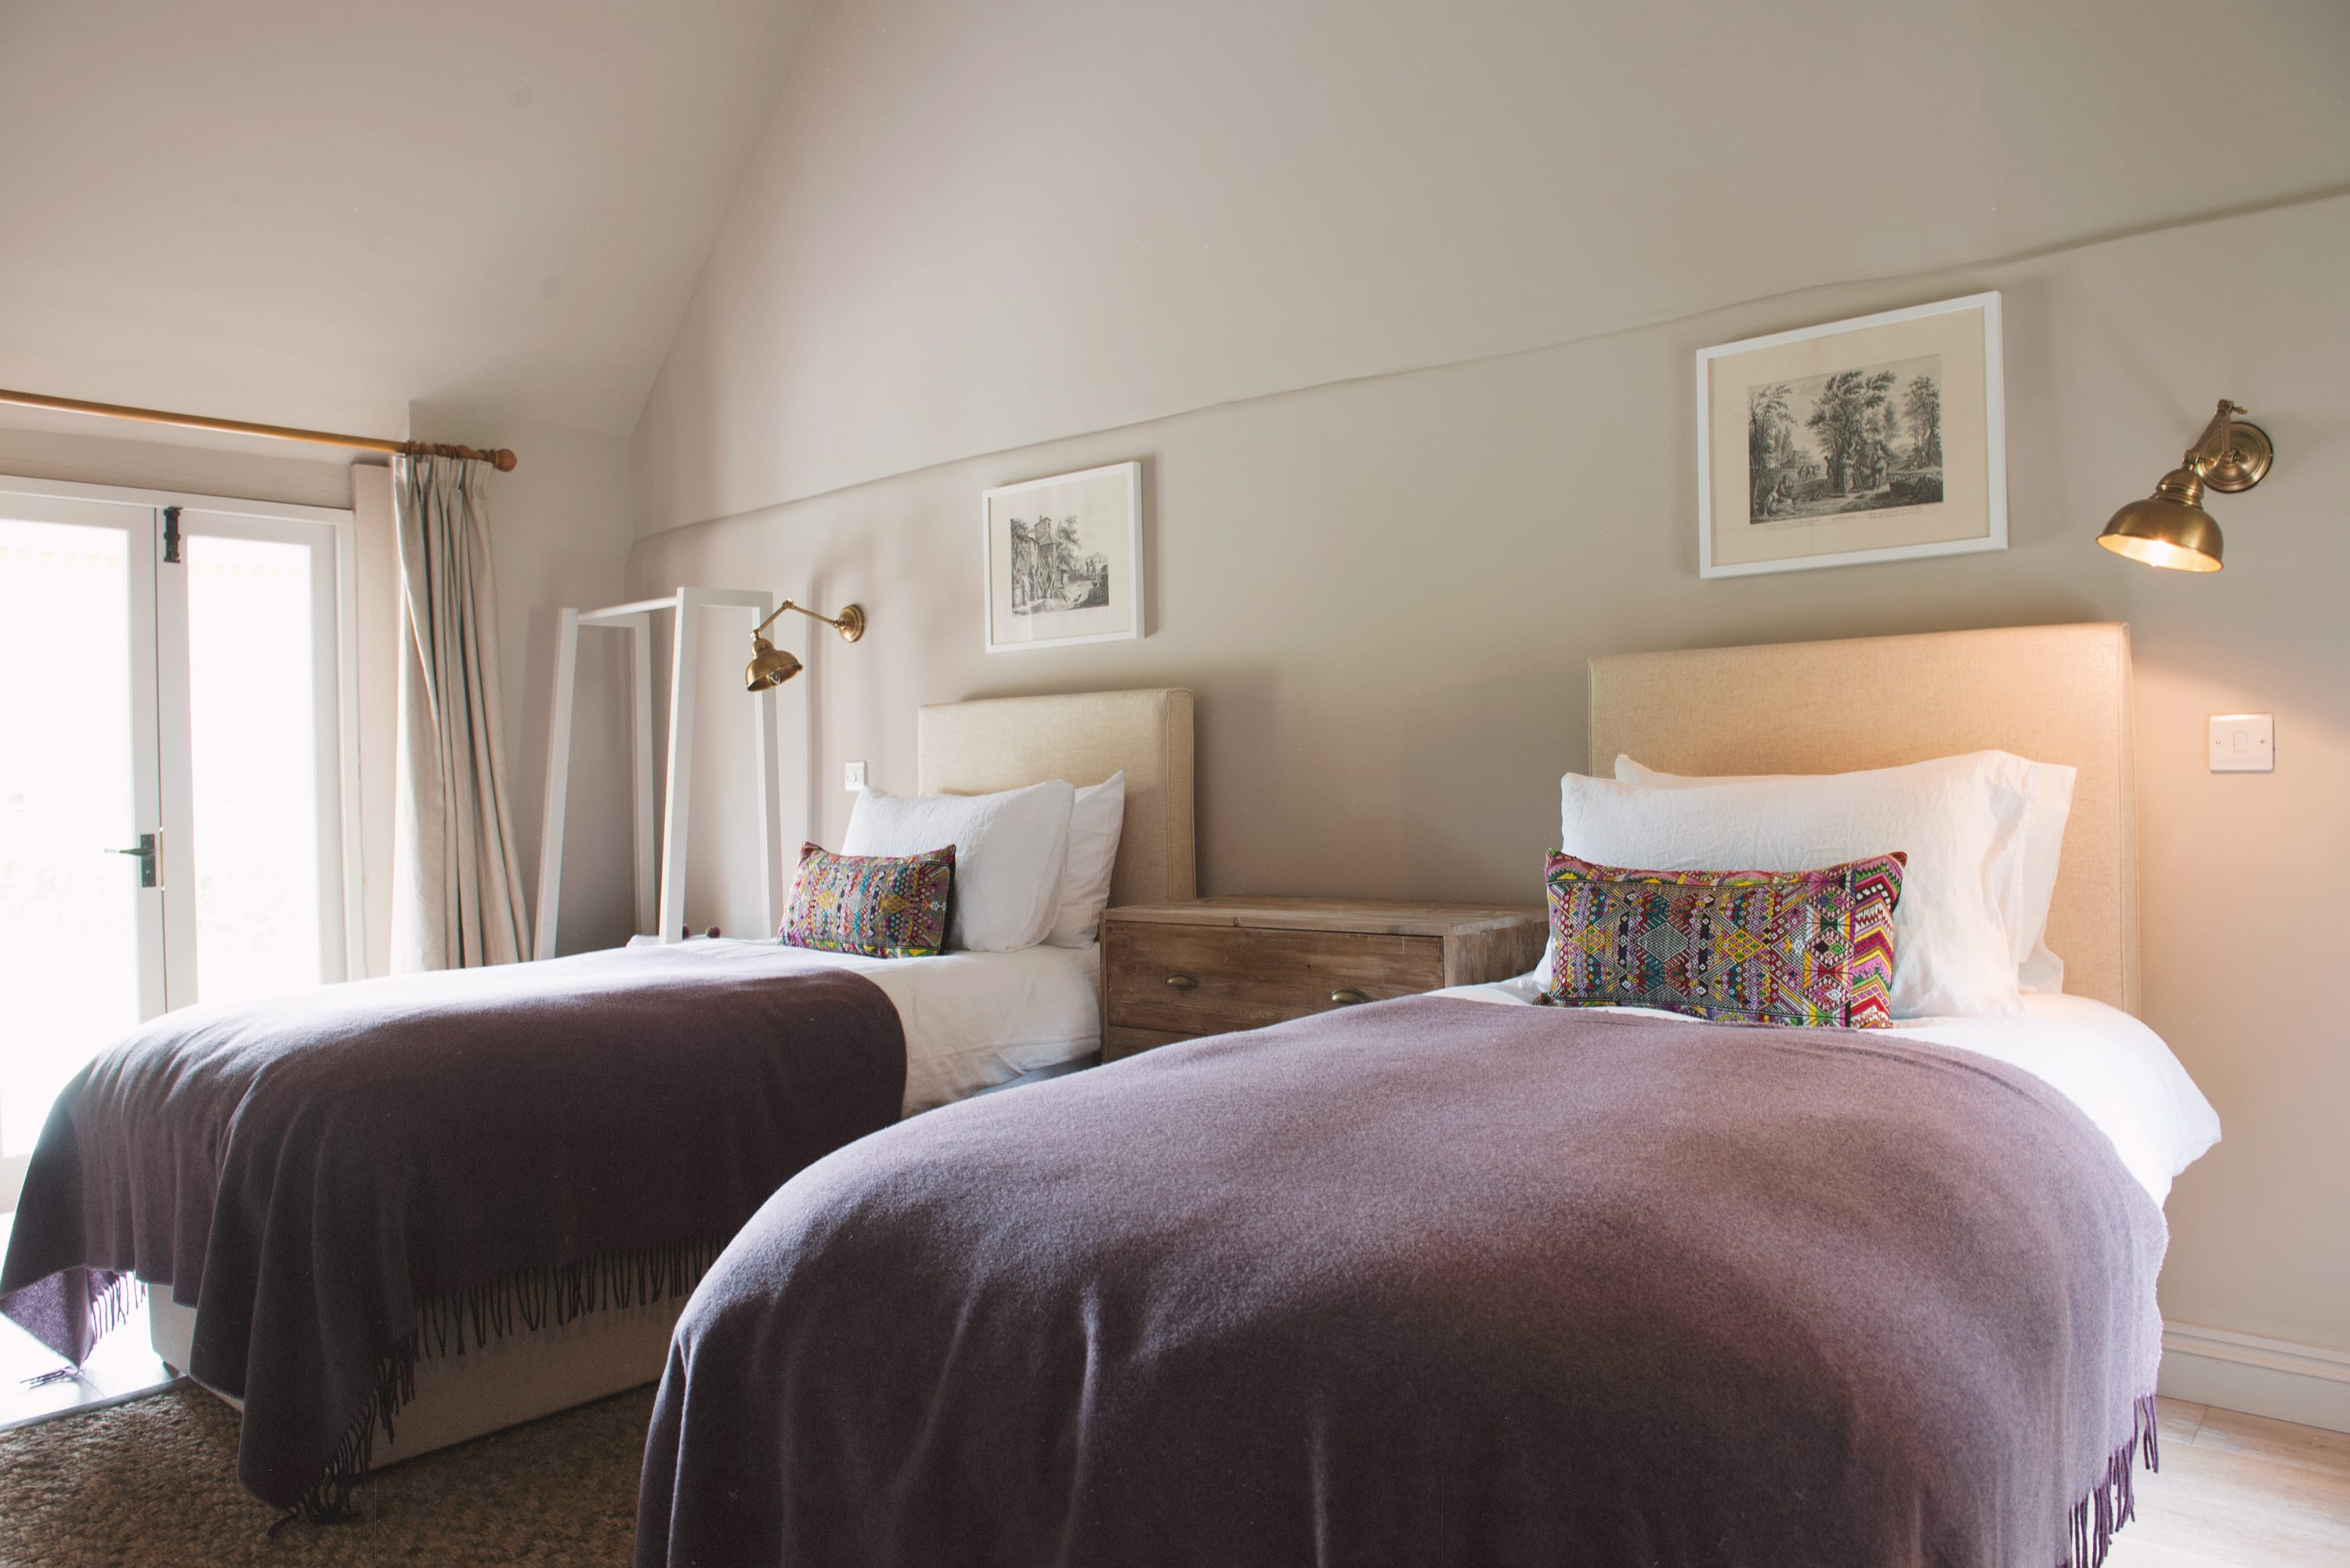 Twin bedroom with cozy purple covers